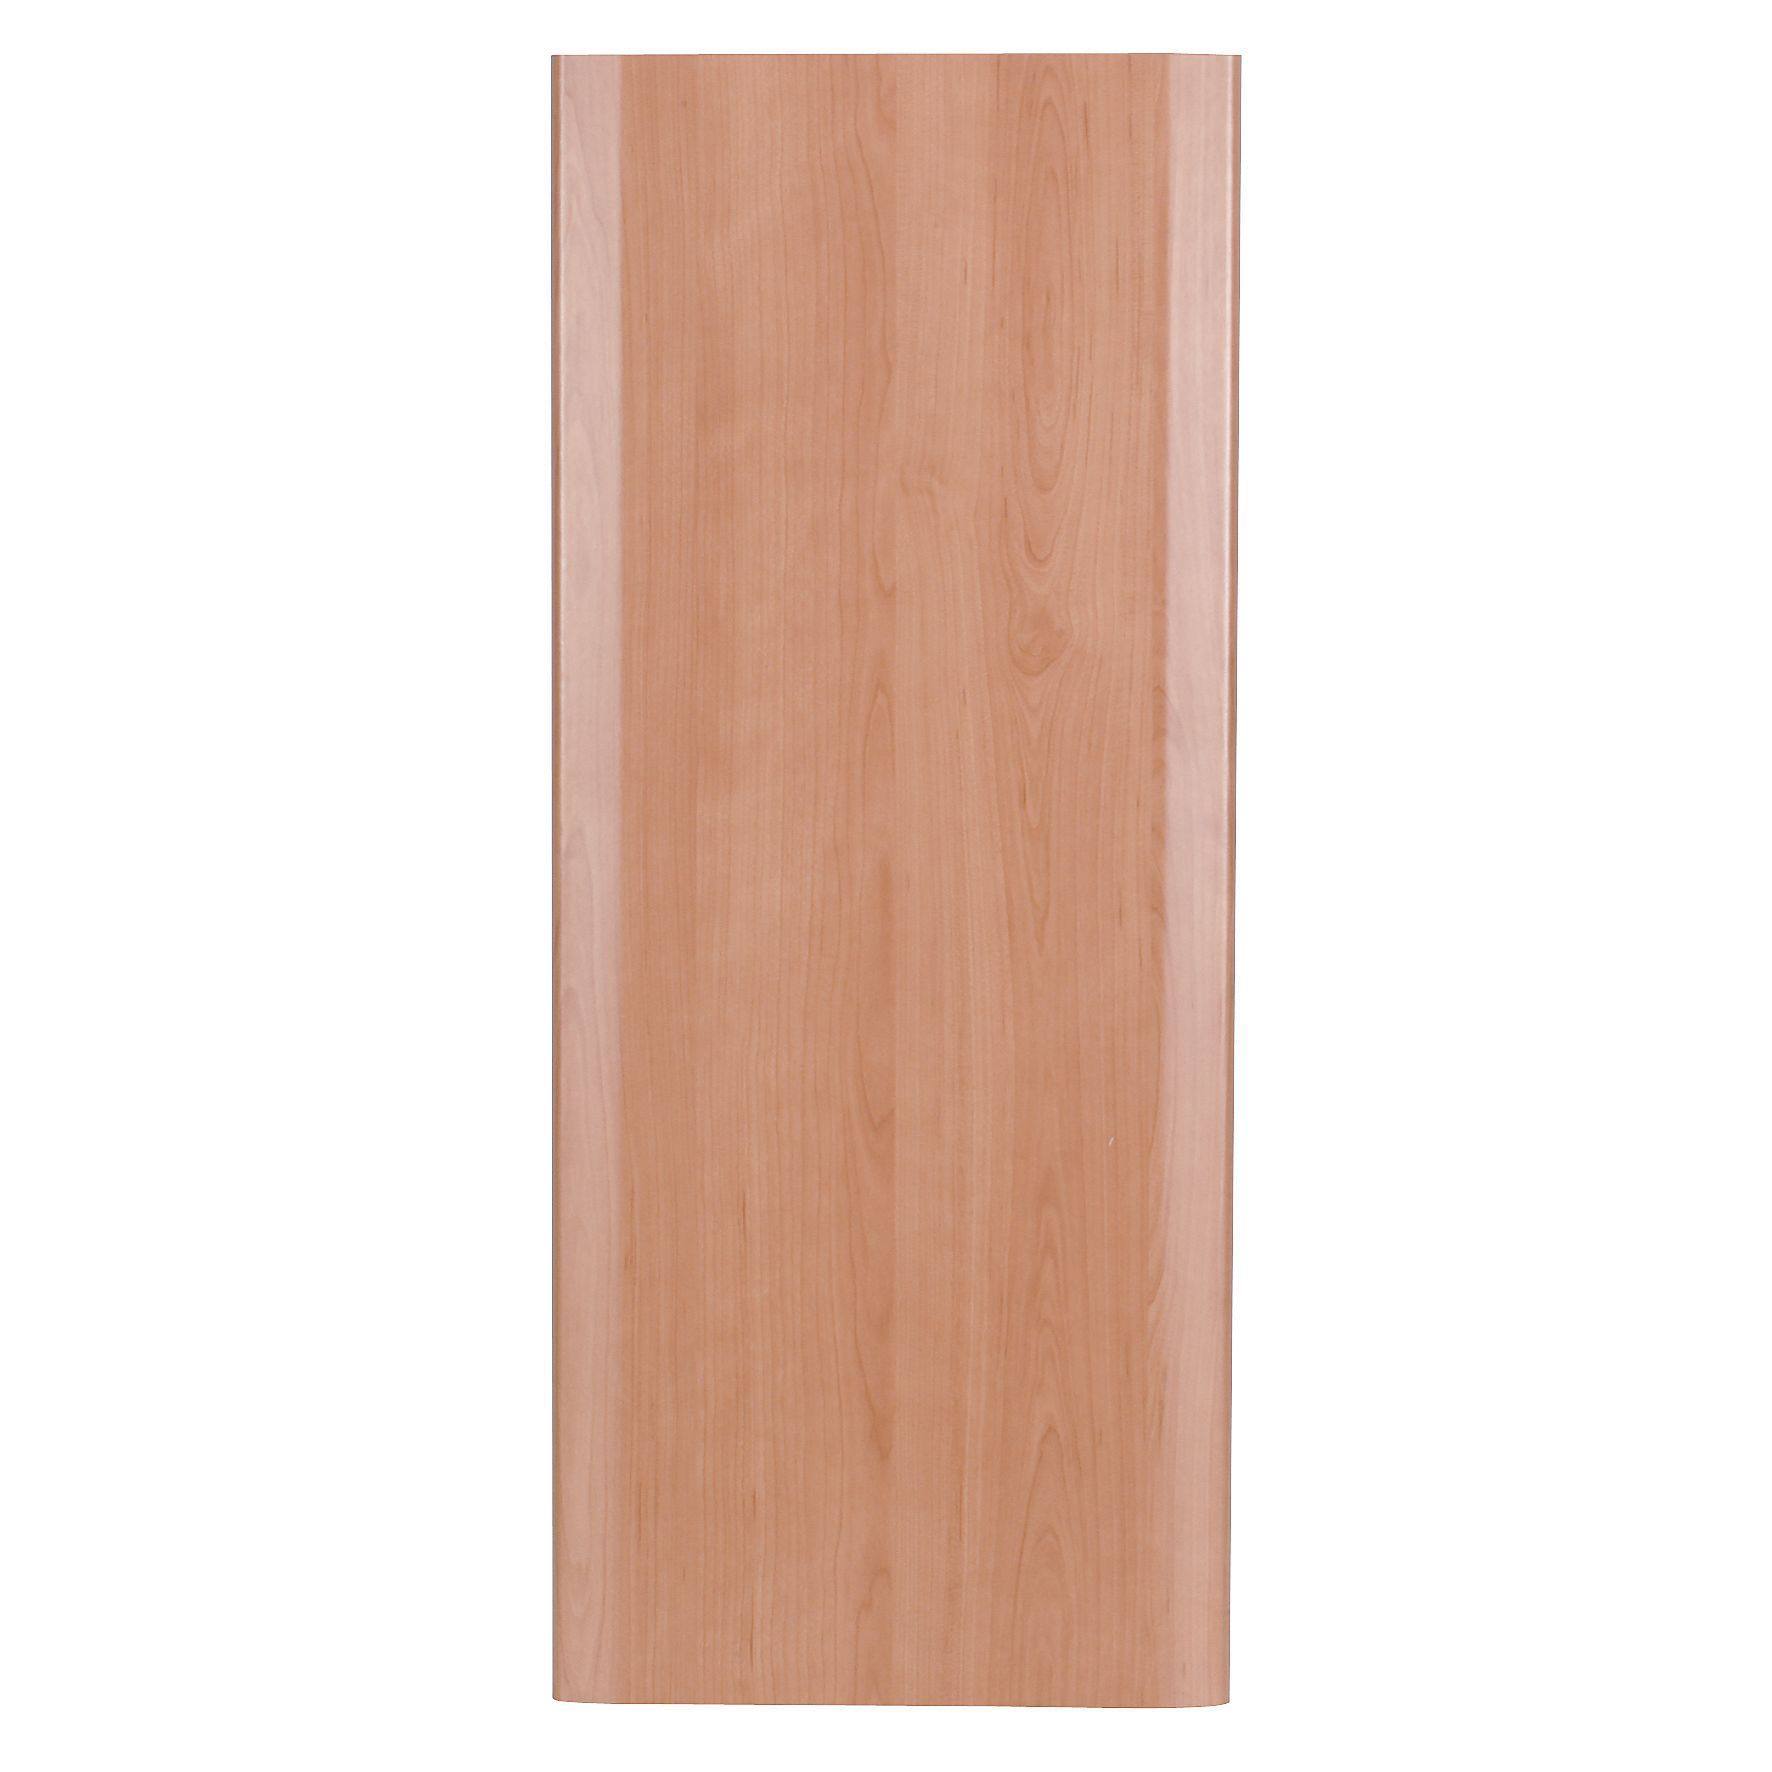 It Kitchens Cherry Effect Wall End Replacement Panel 290 Mm